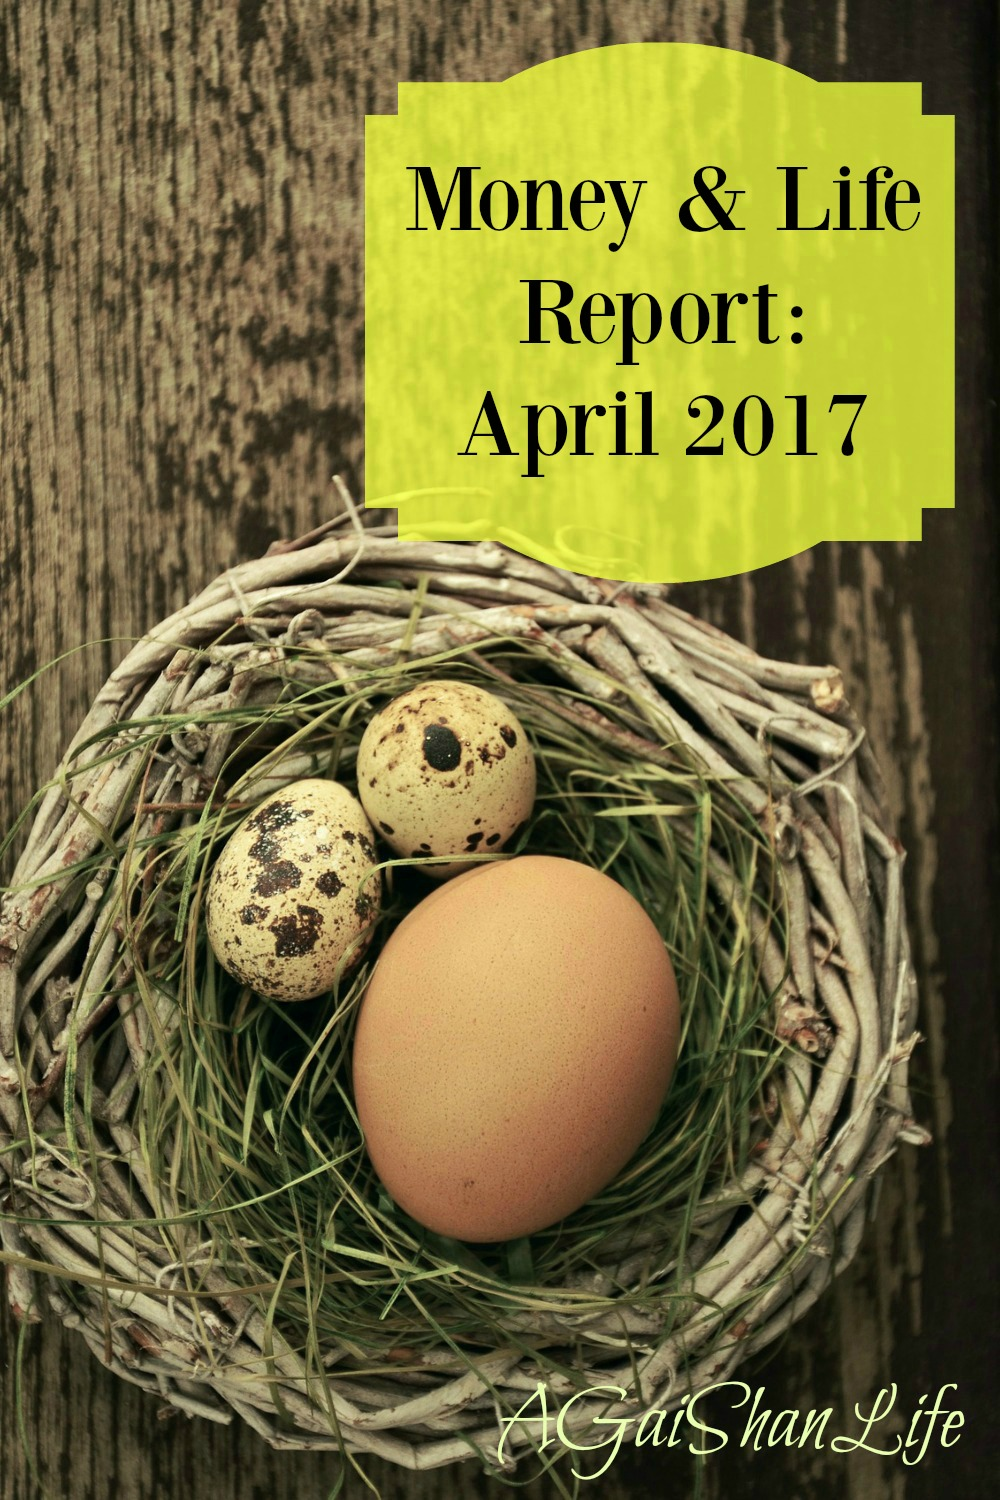 Money and Life Report: April 2017